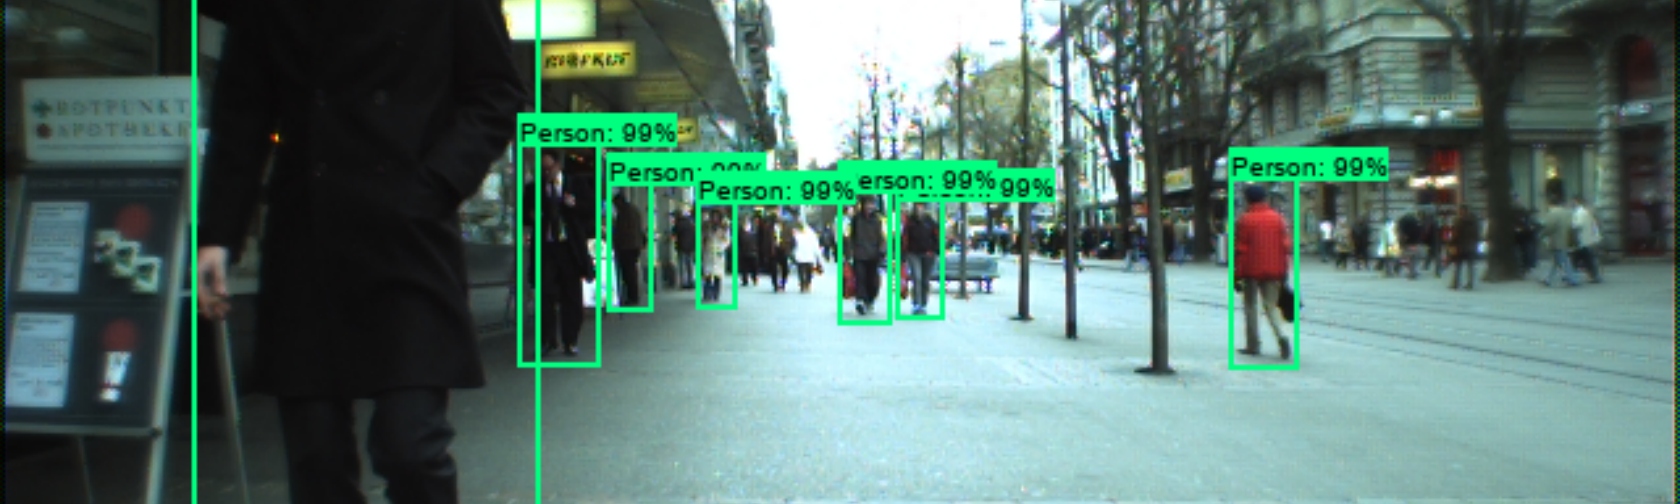 Pedestrian detection on ETH data set with Faster R-CNN